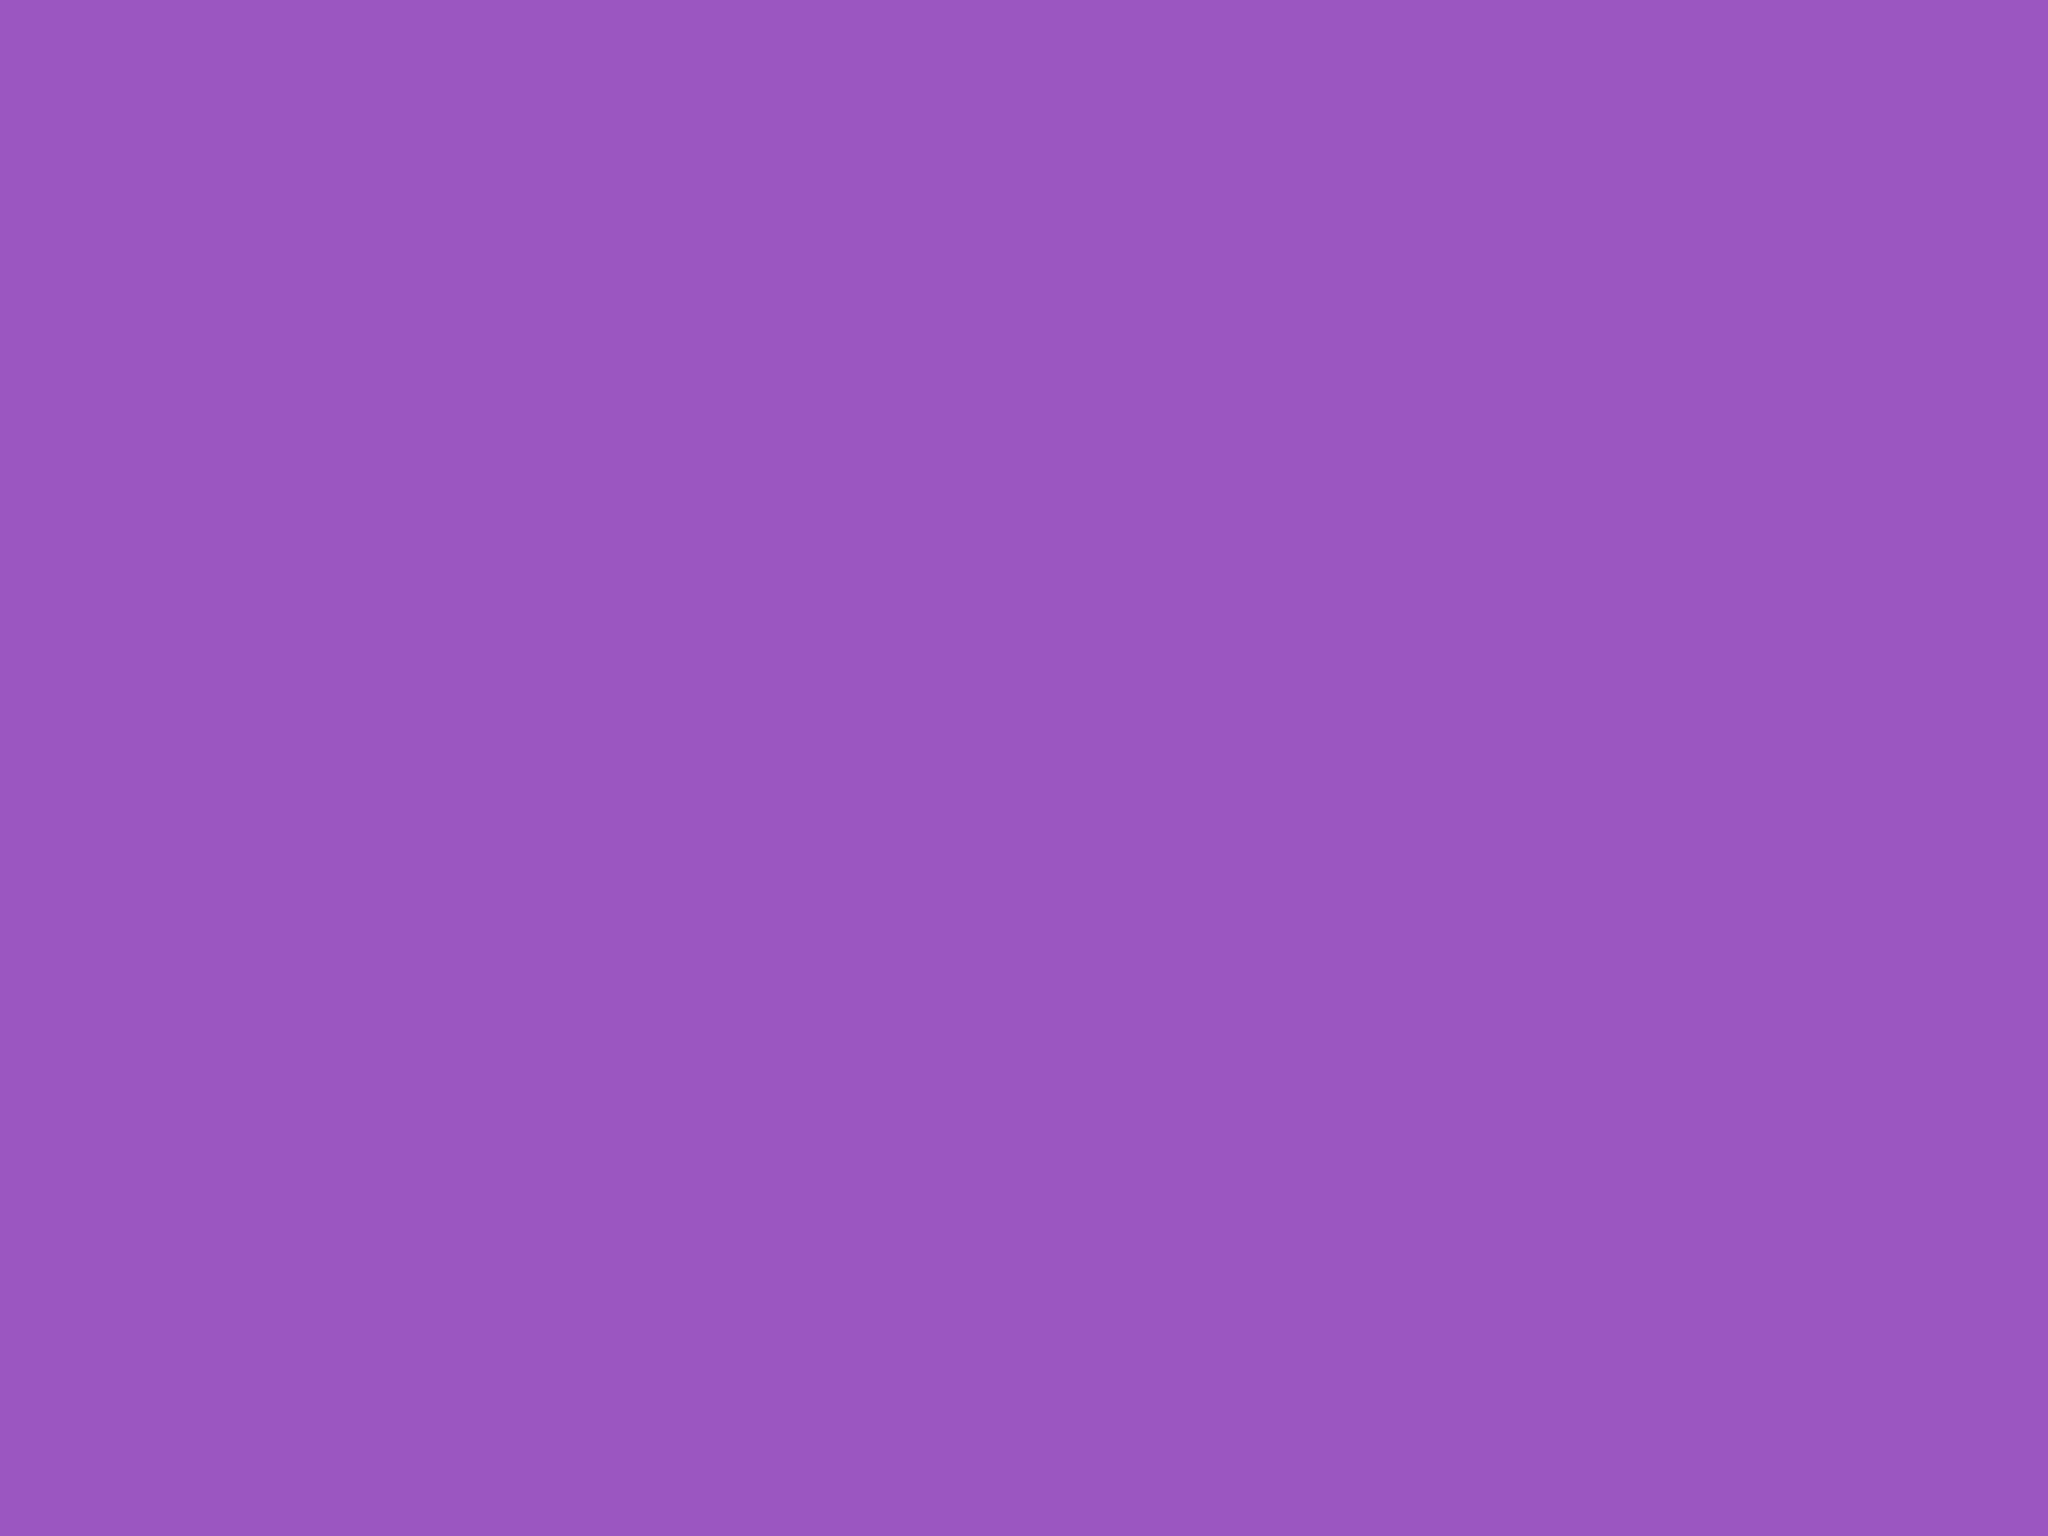 2048x1536 Deep Lilac Solid Color Background